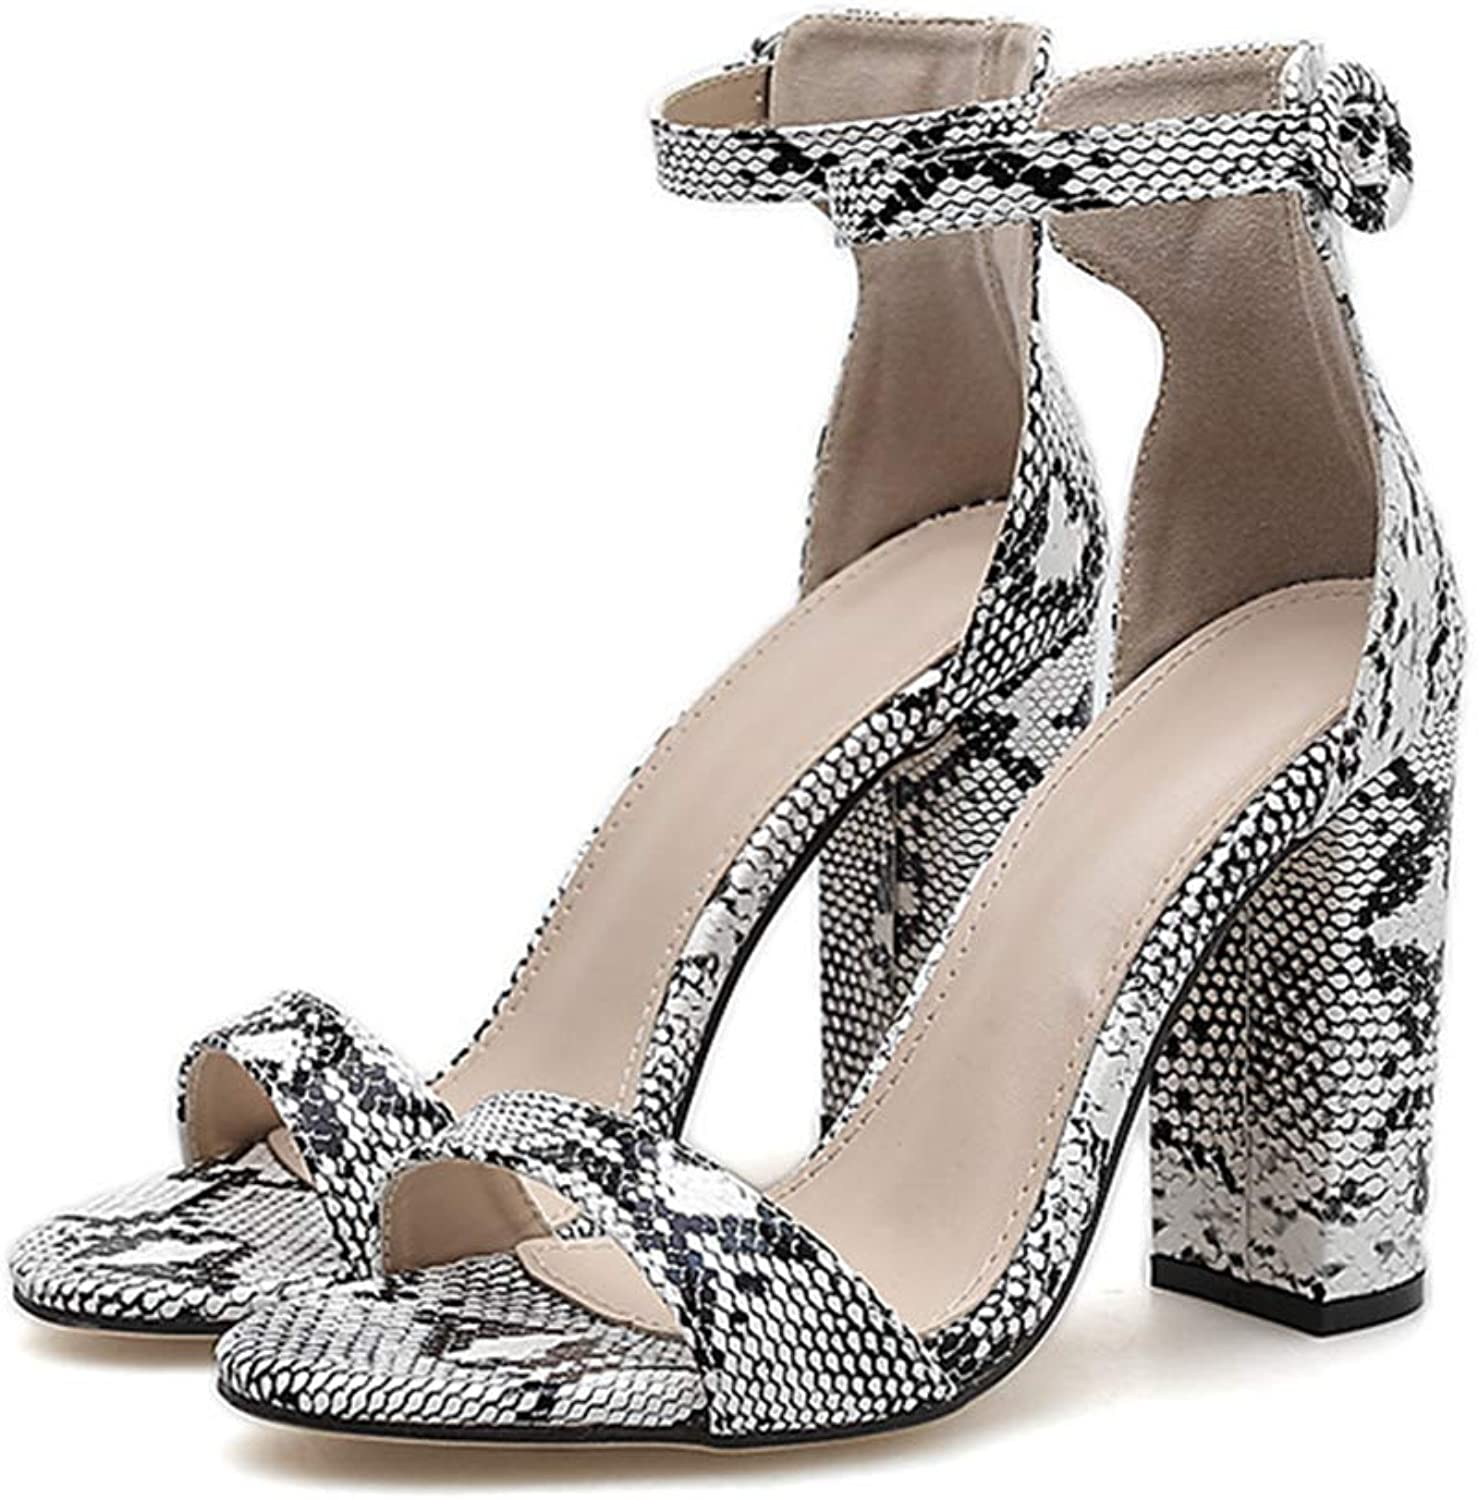 XDLEX Women's Snakeskin Print Strappy Heeled Sandals Open Toe Ankle Buckle Strap Stiletto Wrap-Around Strap Cover Heel Chunky Block Thick Heel Cutout shoes